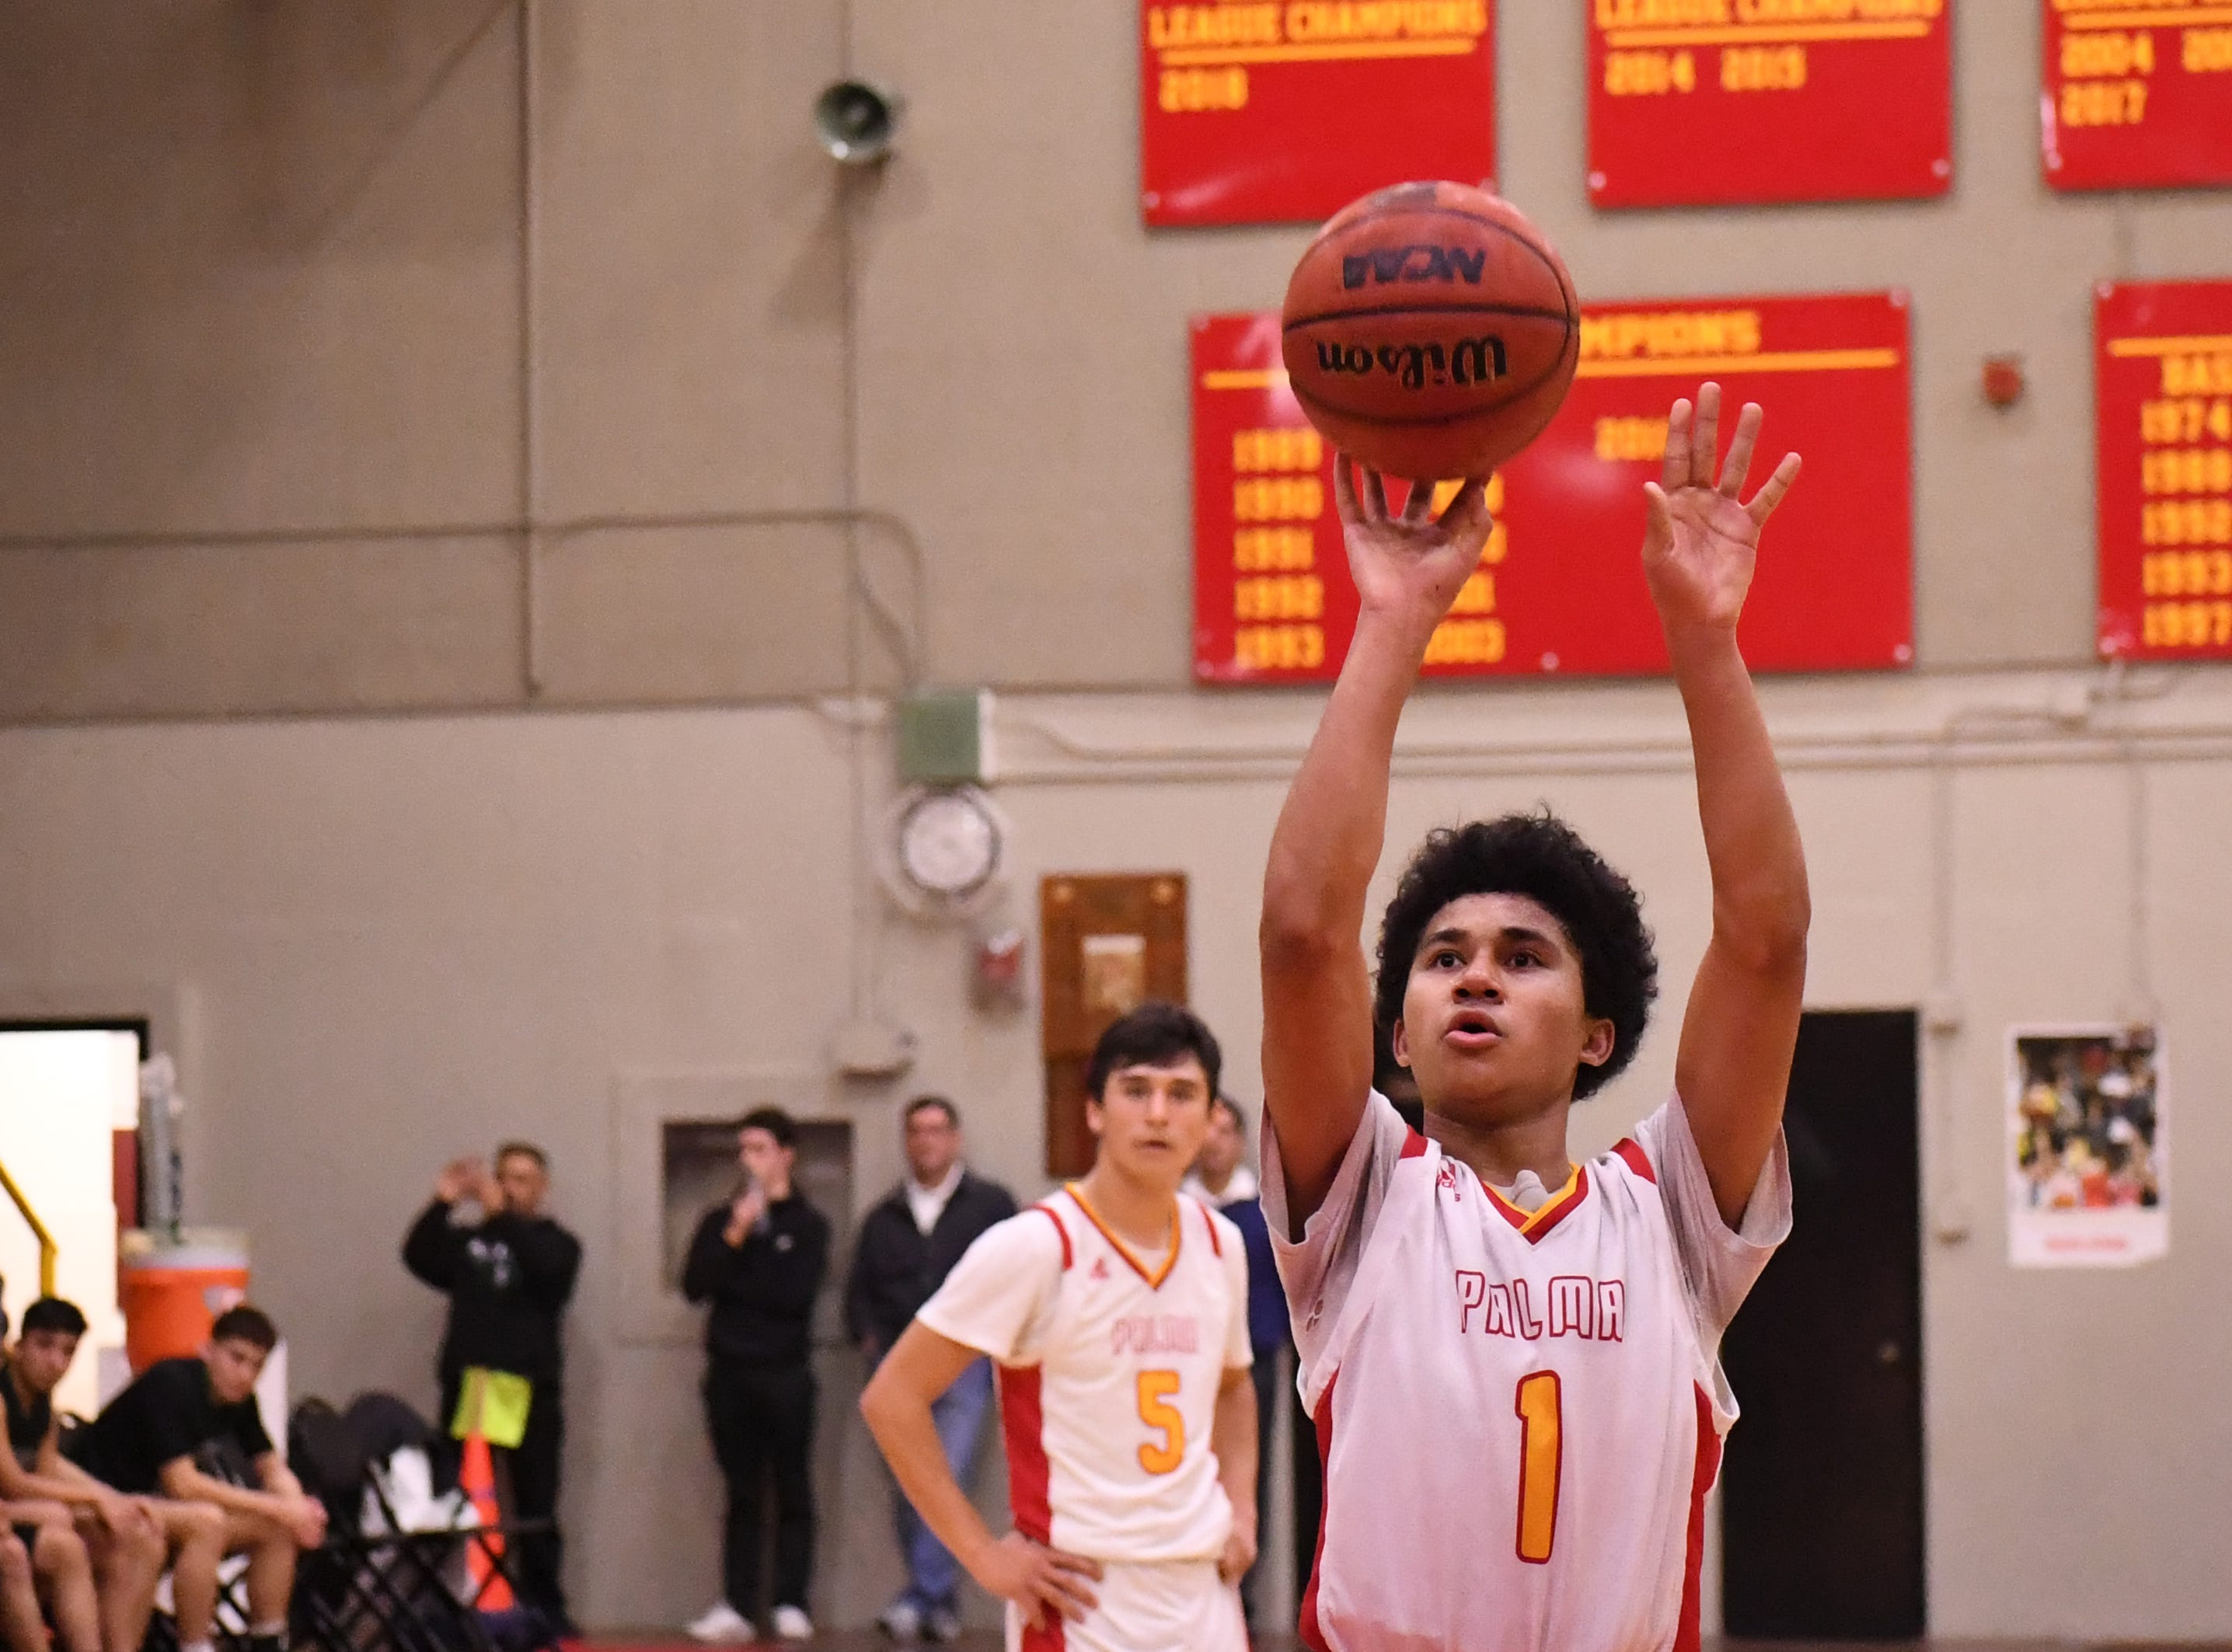 Palma guard Nate Jean Pierre (1) shoots a free throw in the waning minutes of the fourth quarter.